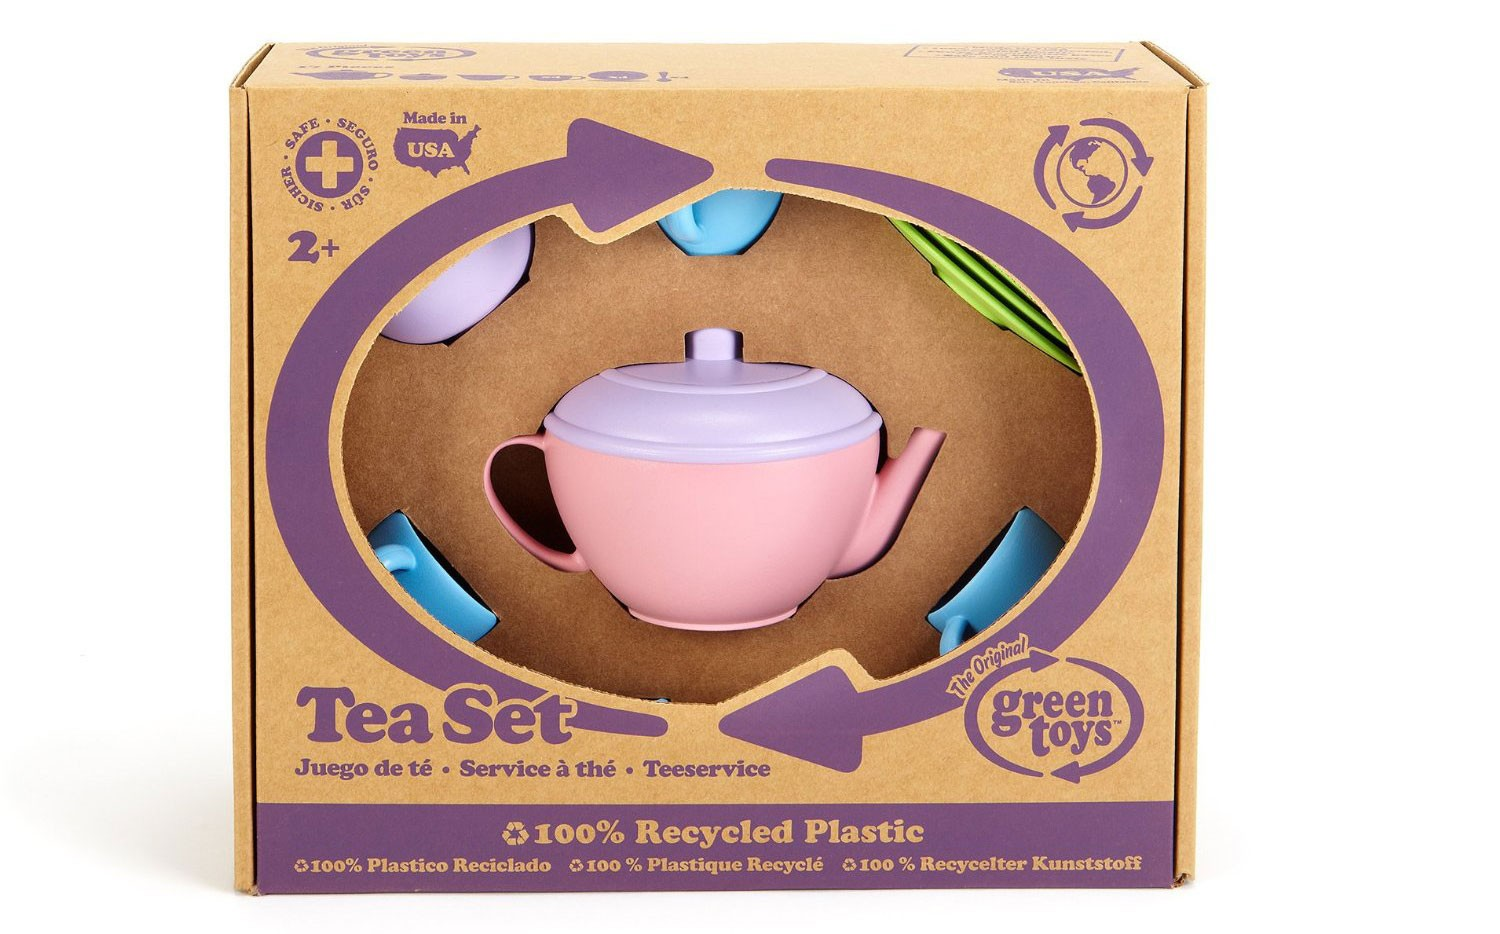 toy tea set packaged in cardboard